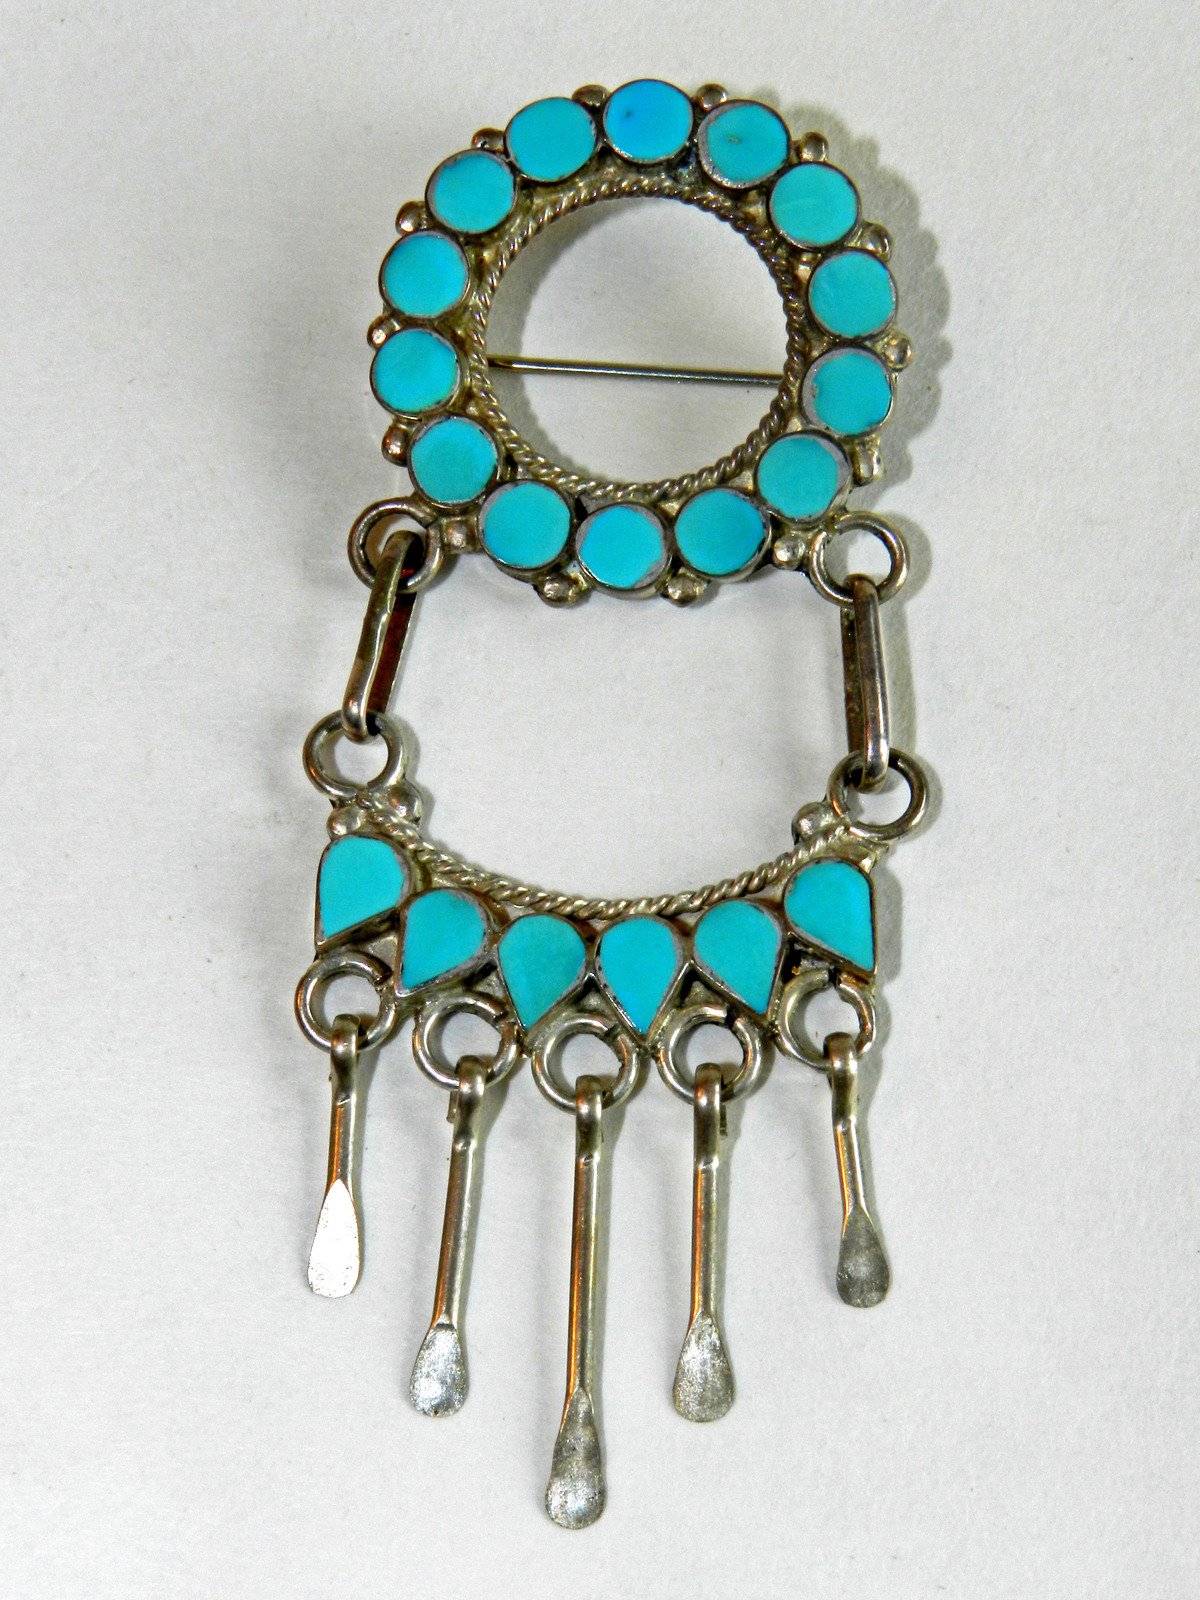 Turquoise & Silver-Tone Native American-Made Brooch/Pin/Fashion Accessory